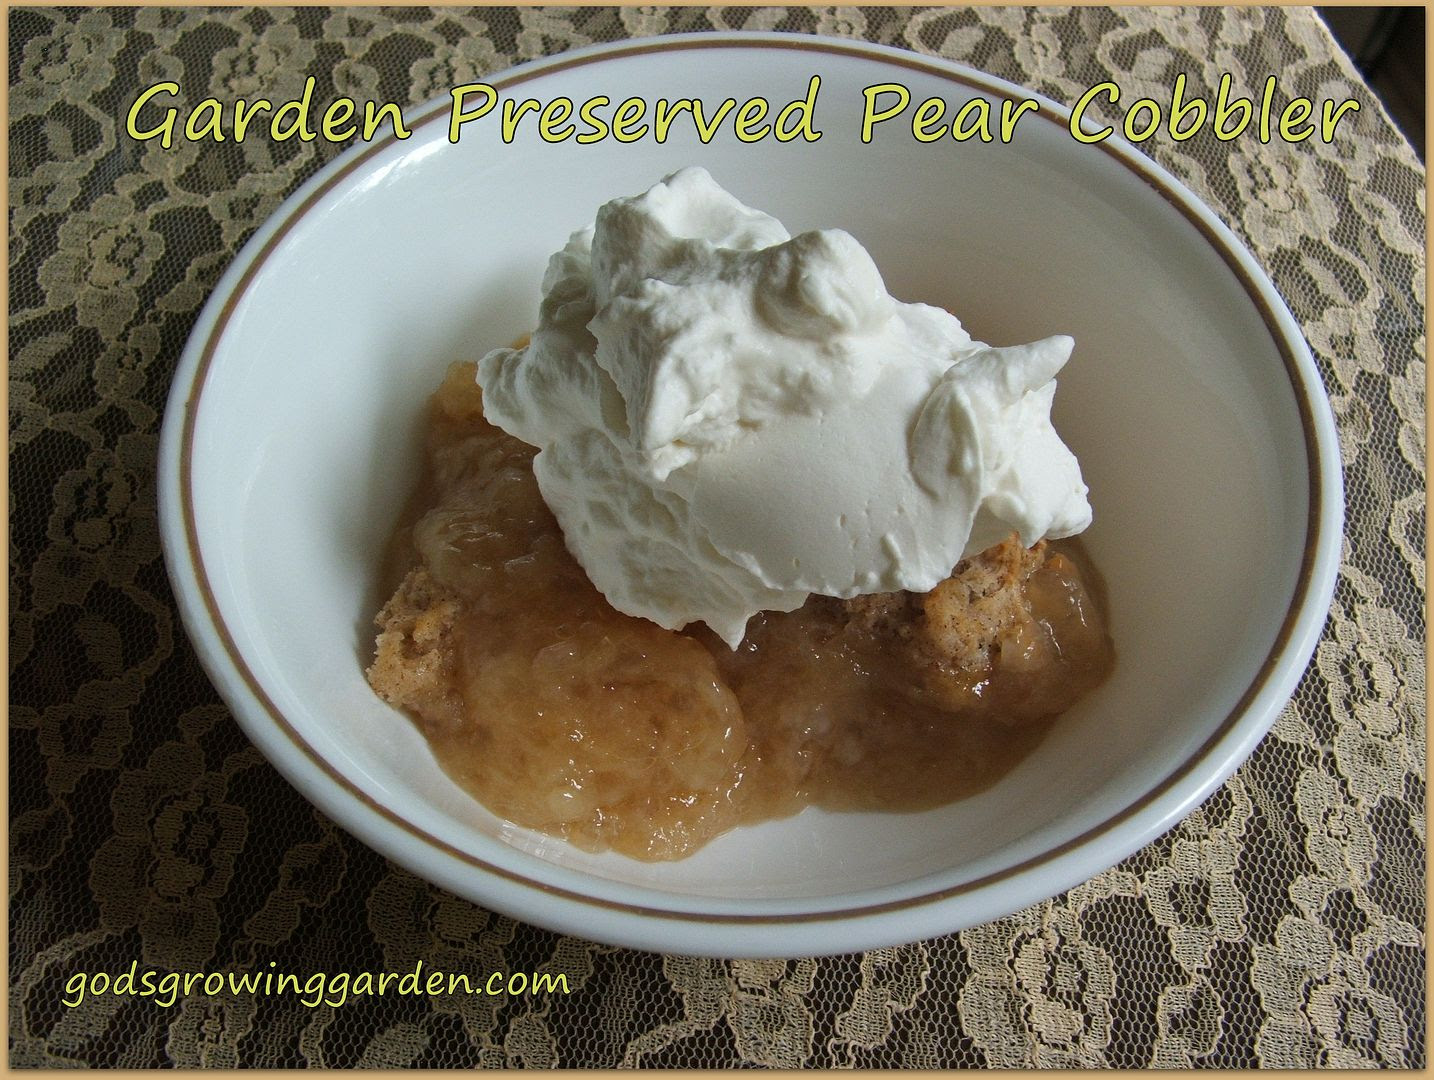 Pear Cobbler by Angie Ouellette-Tower for godsgrowinggarden.com photo 007_zps80971f7f.jpg